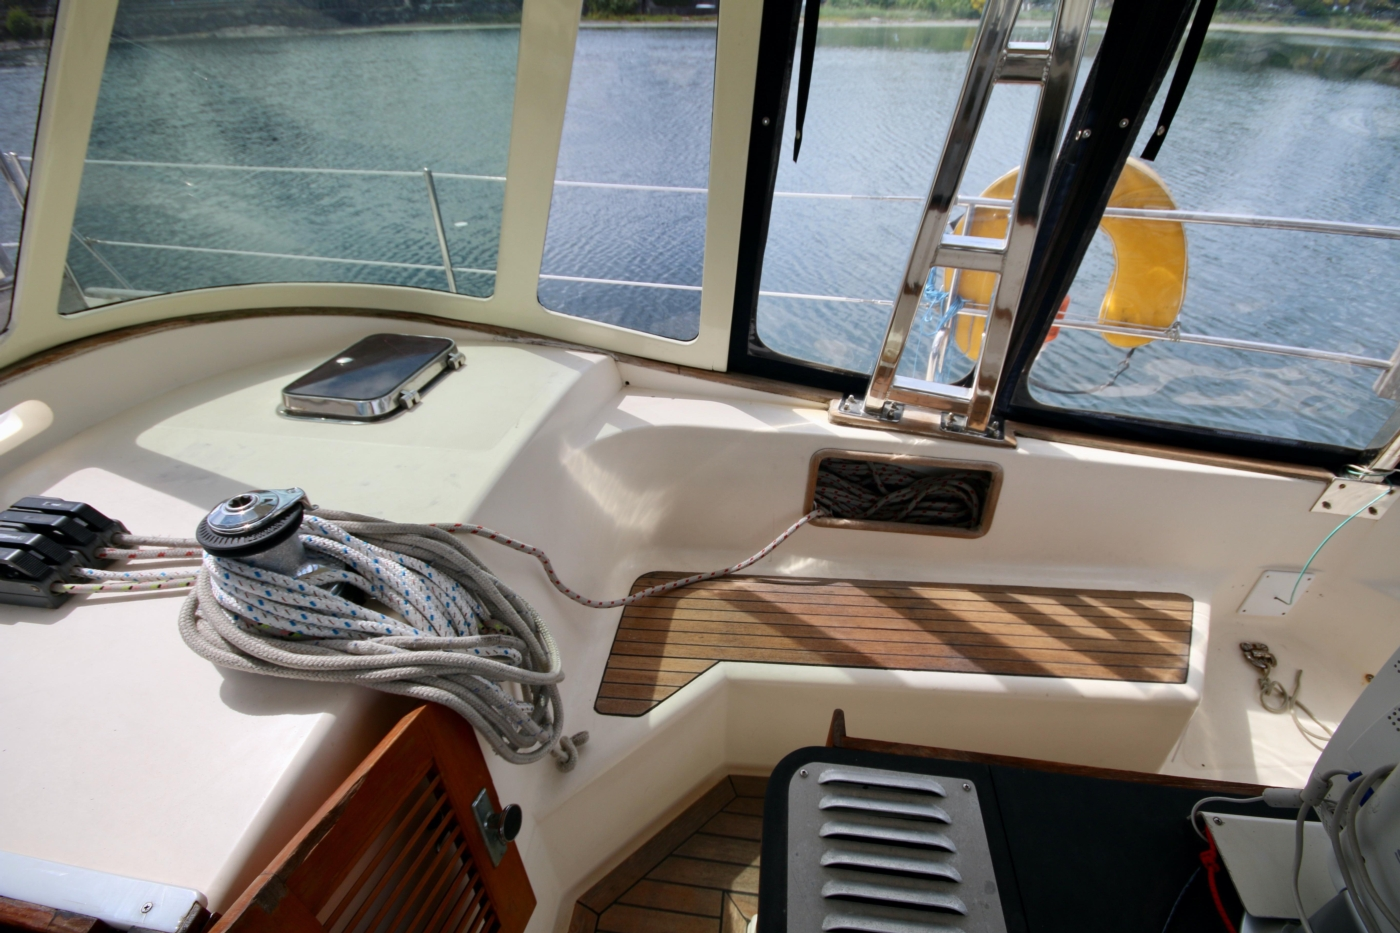 1996 Tanton 45 Offshore, Electric Winch